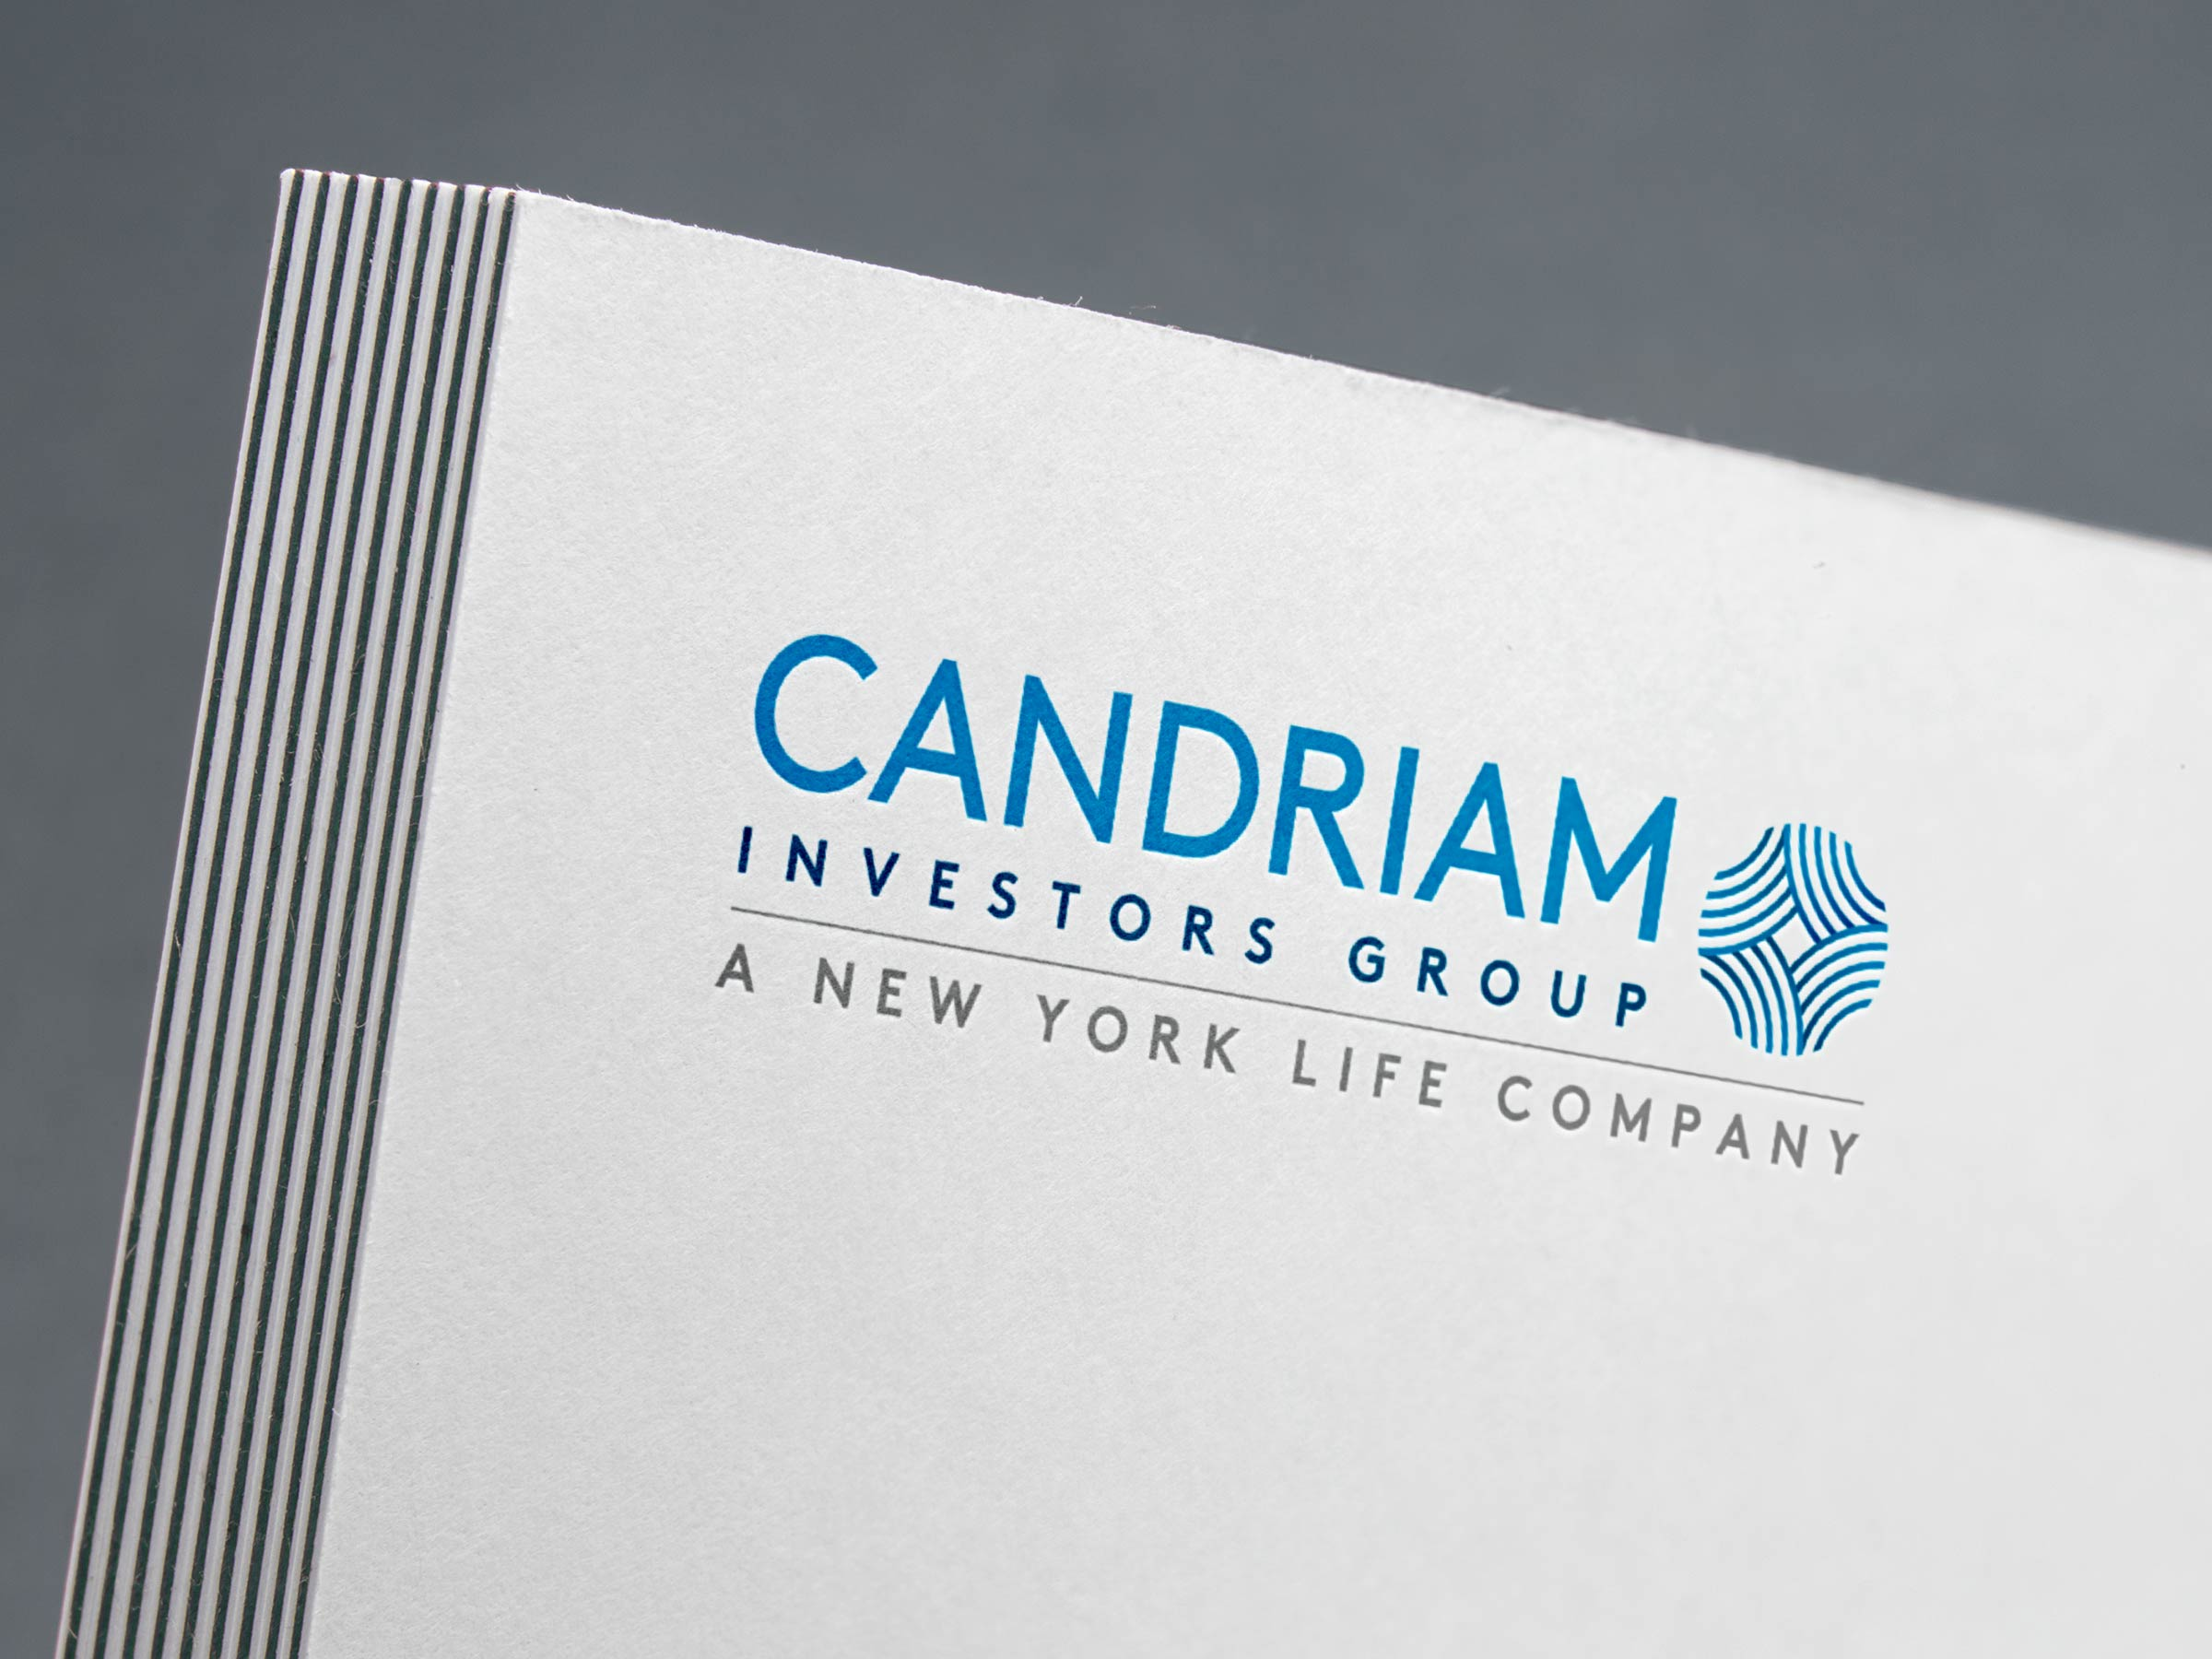 Candriam case study cover